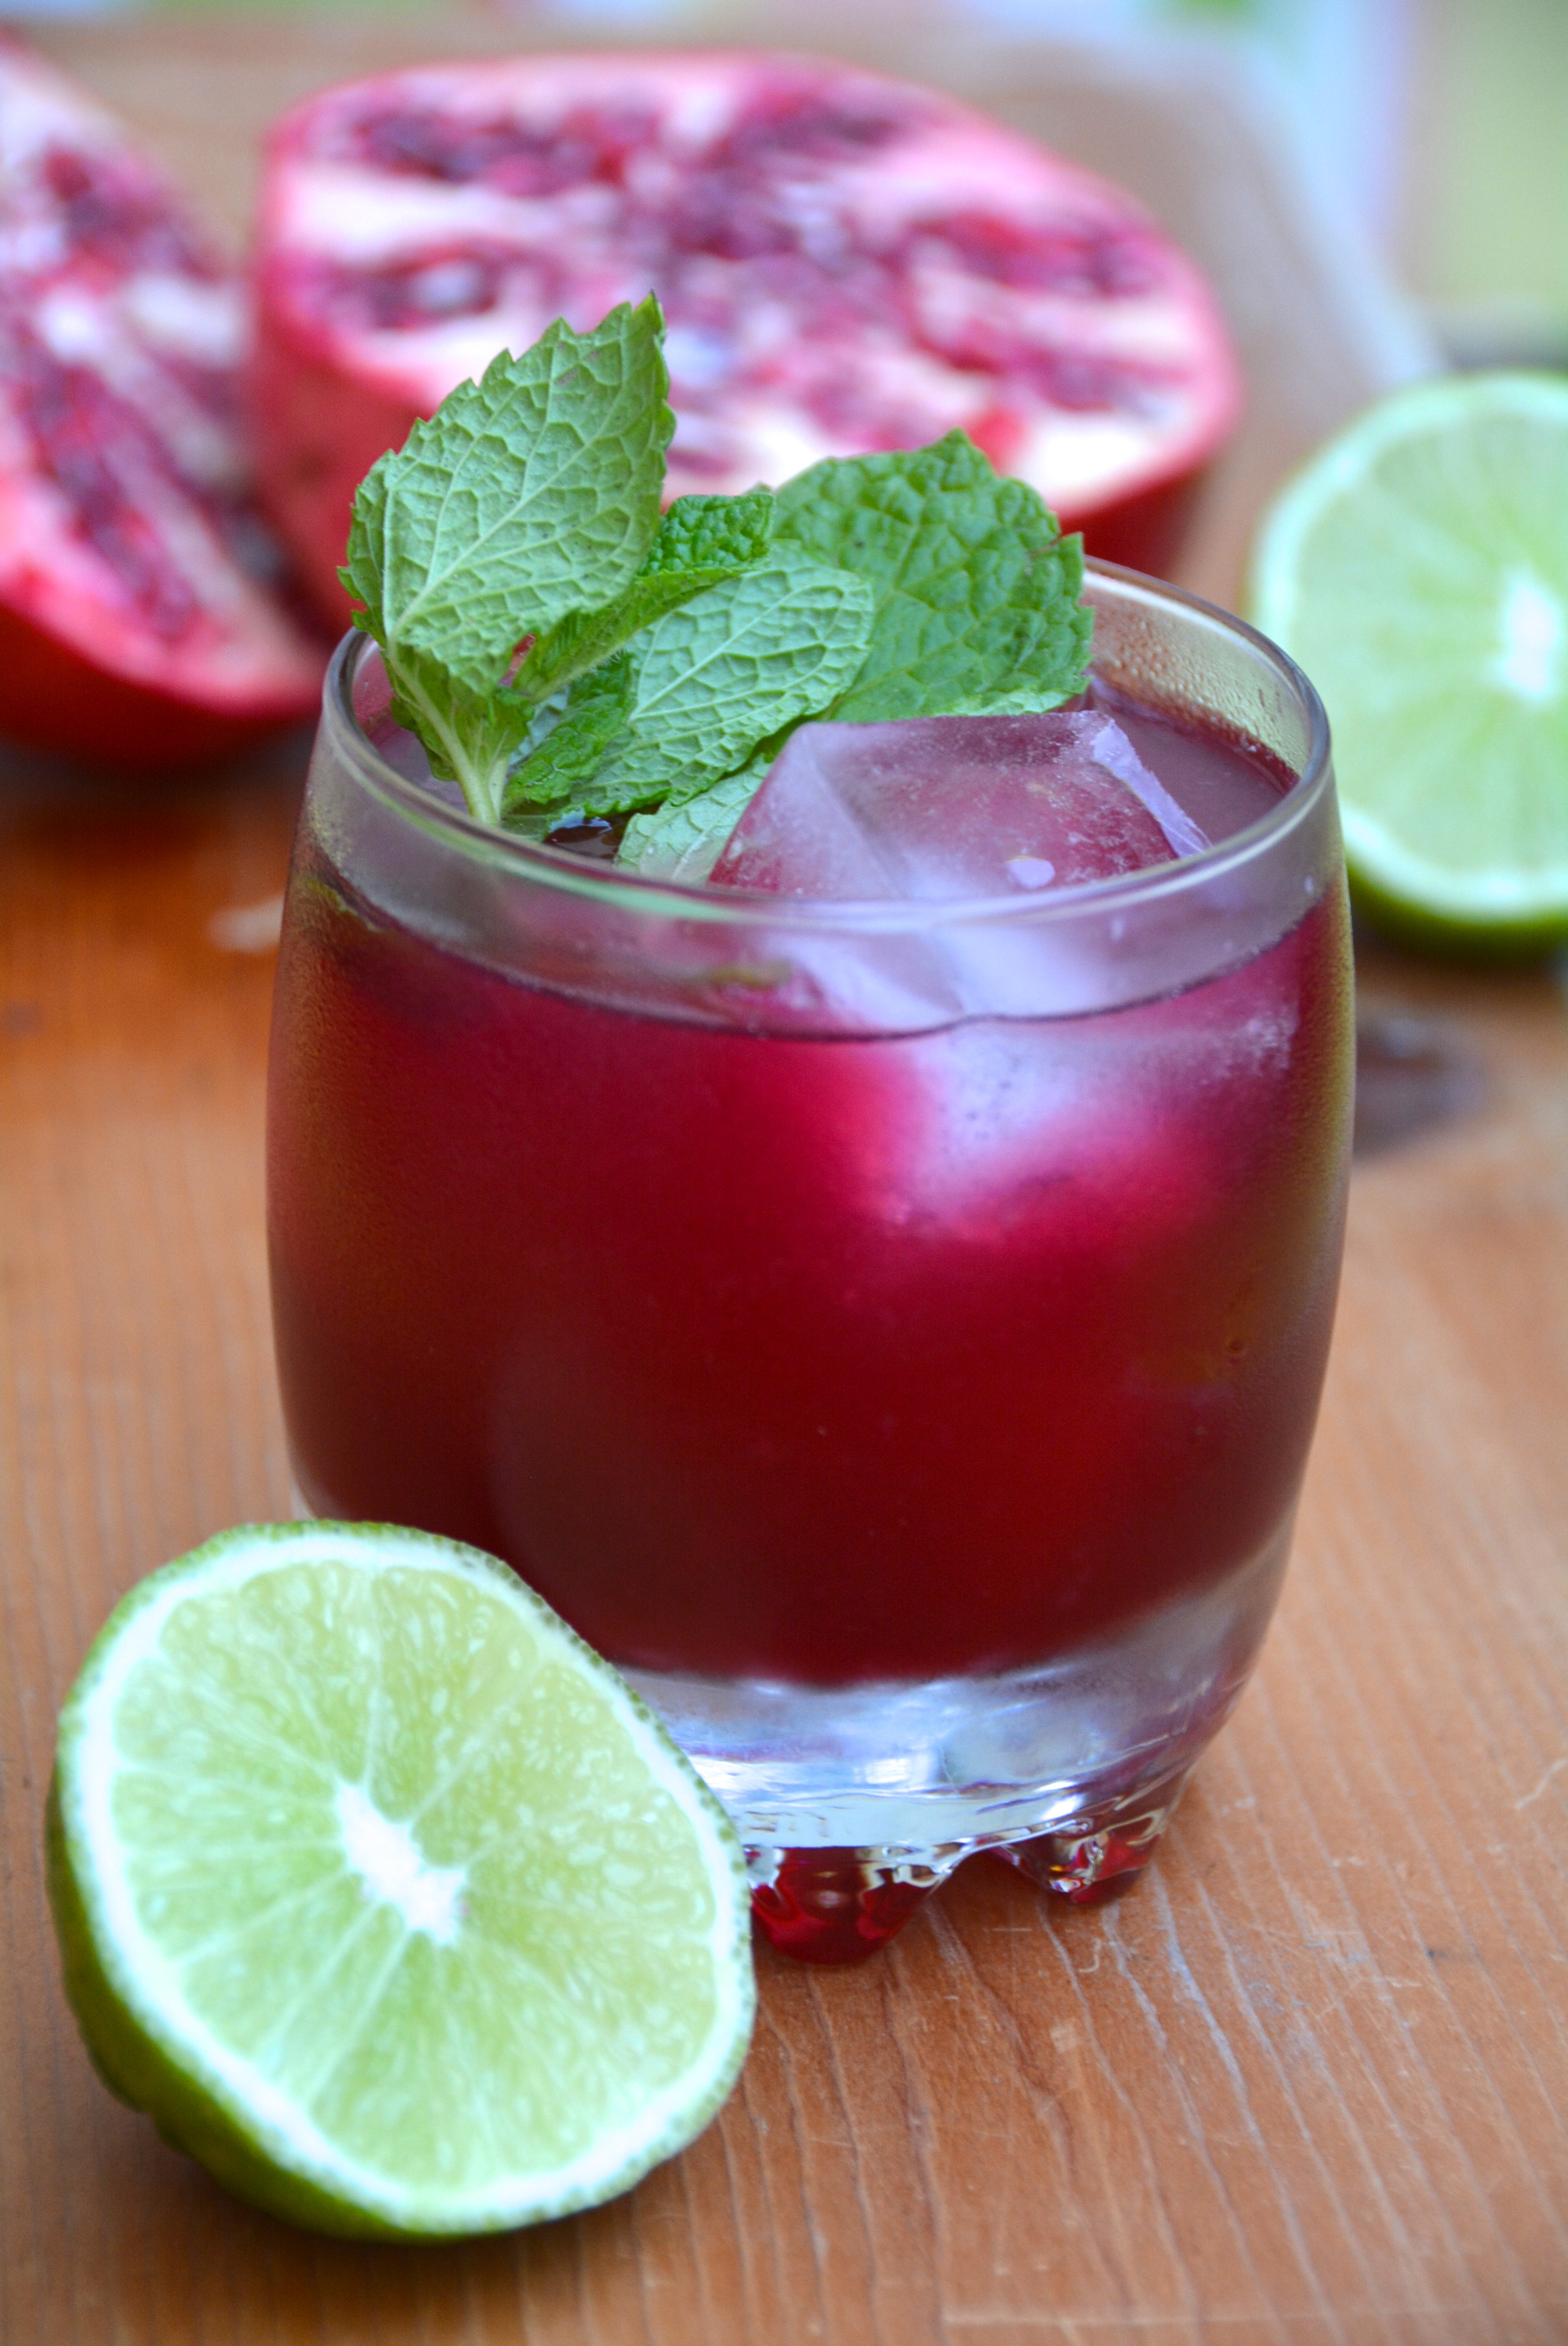 15 Punch recipes that will become your go-to summer drinks